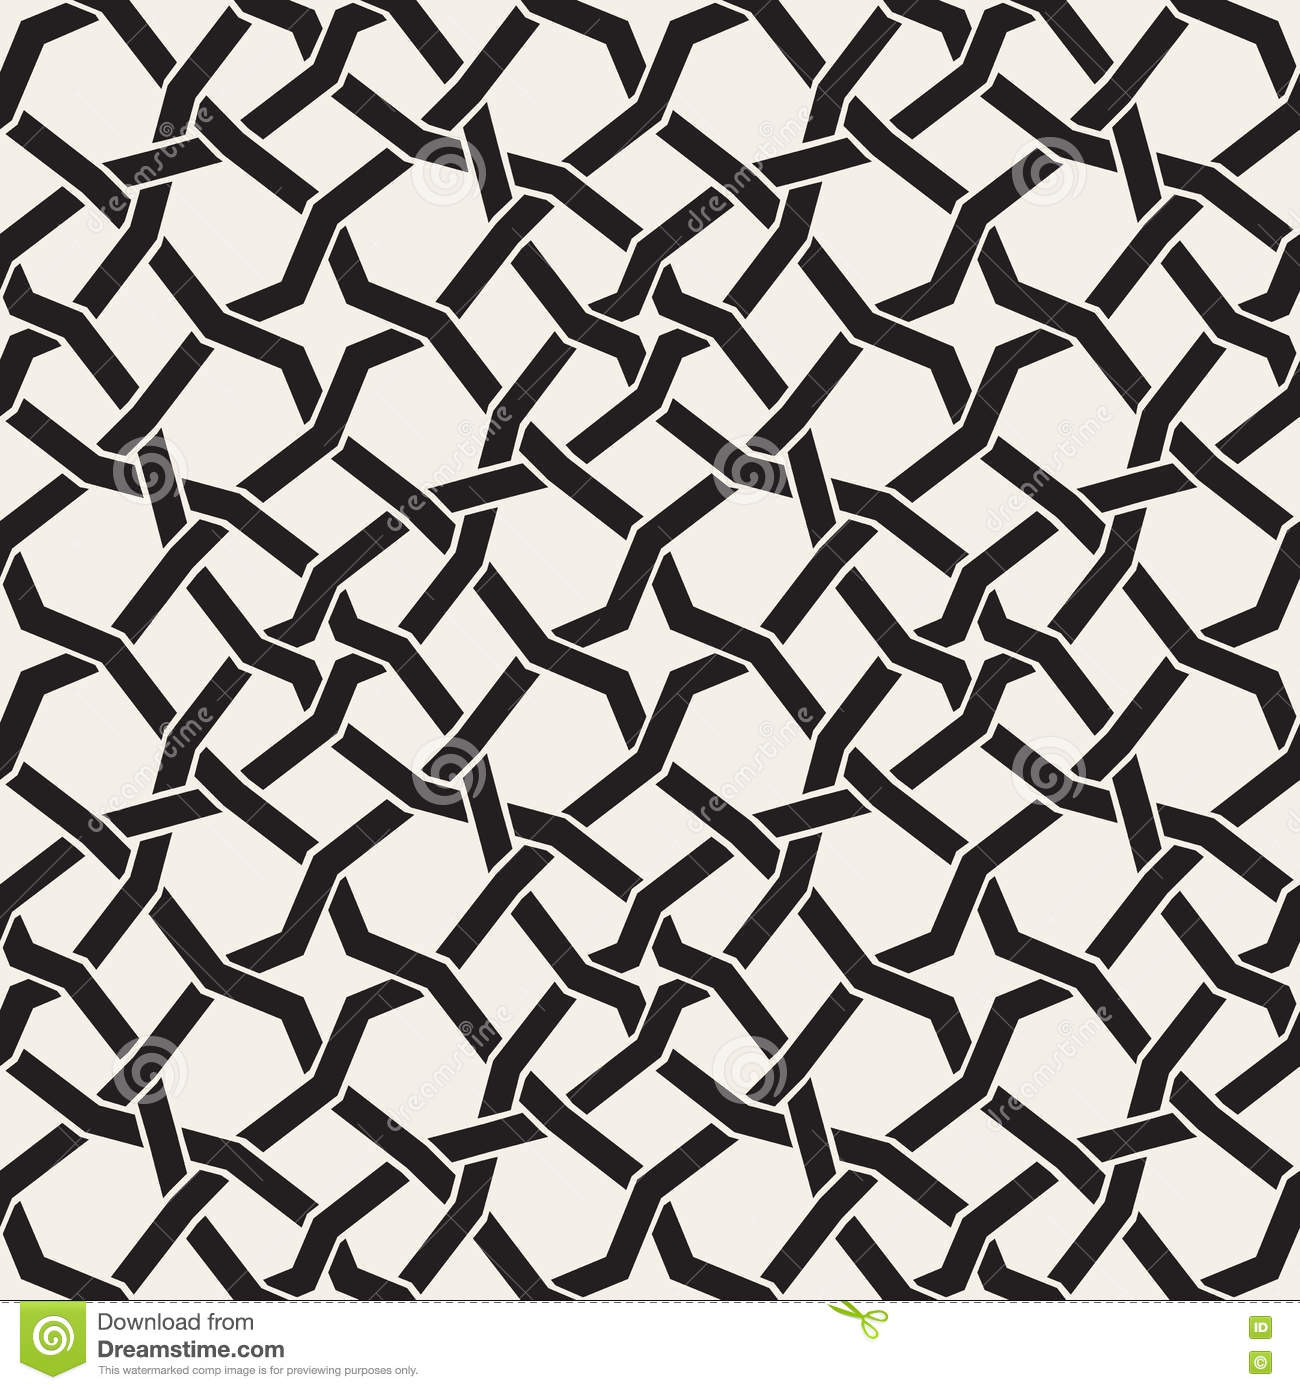 Islamic Geometric Patterns Black And White | www.pixshark ...